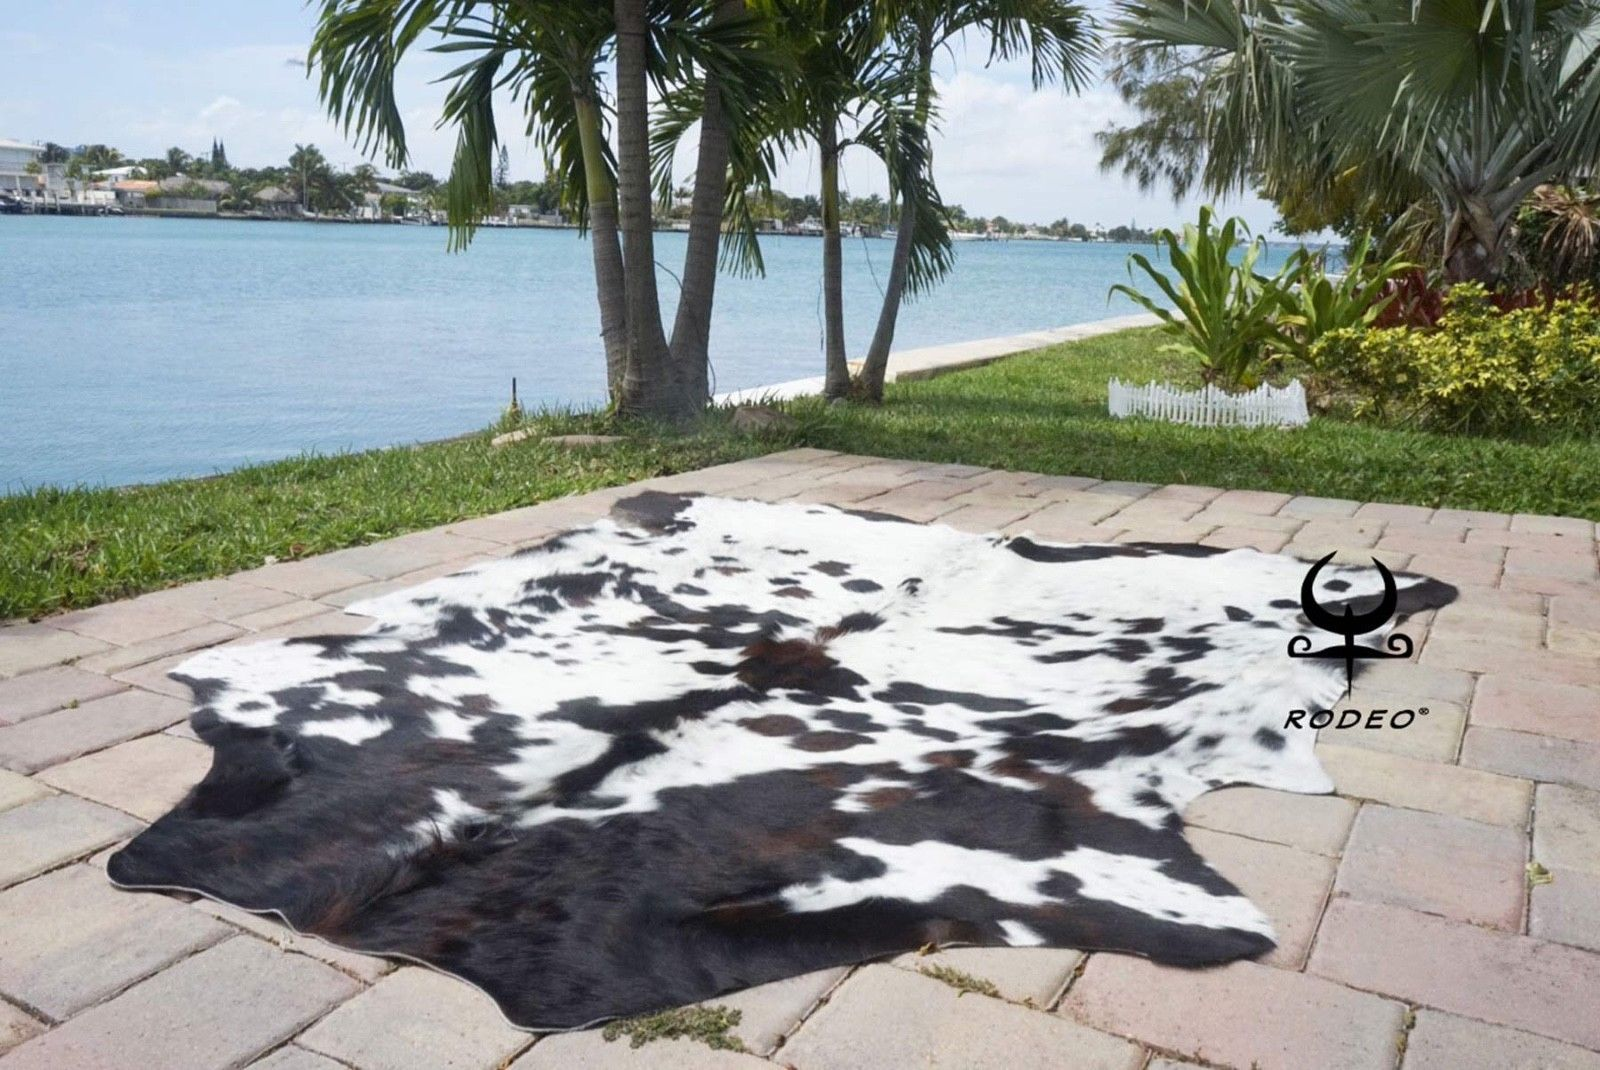 Leather Fur And Sheepskin Rugs 91421 Rodeo Speckled Tricolor Cowhides Rugs Cow Skin Large Size Approx 6x6 5x7 Cow Hide Rug Cow Skin Rug Patterned Carpet